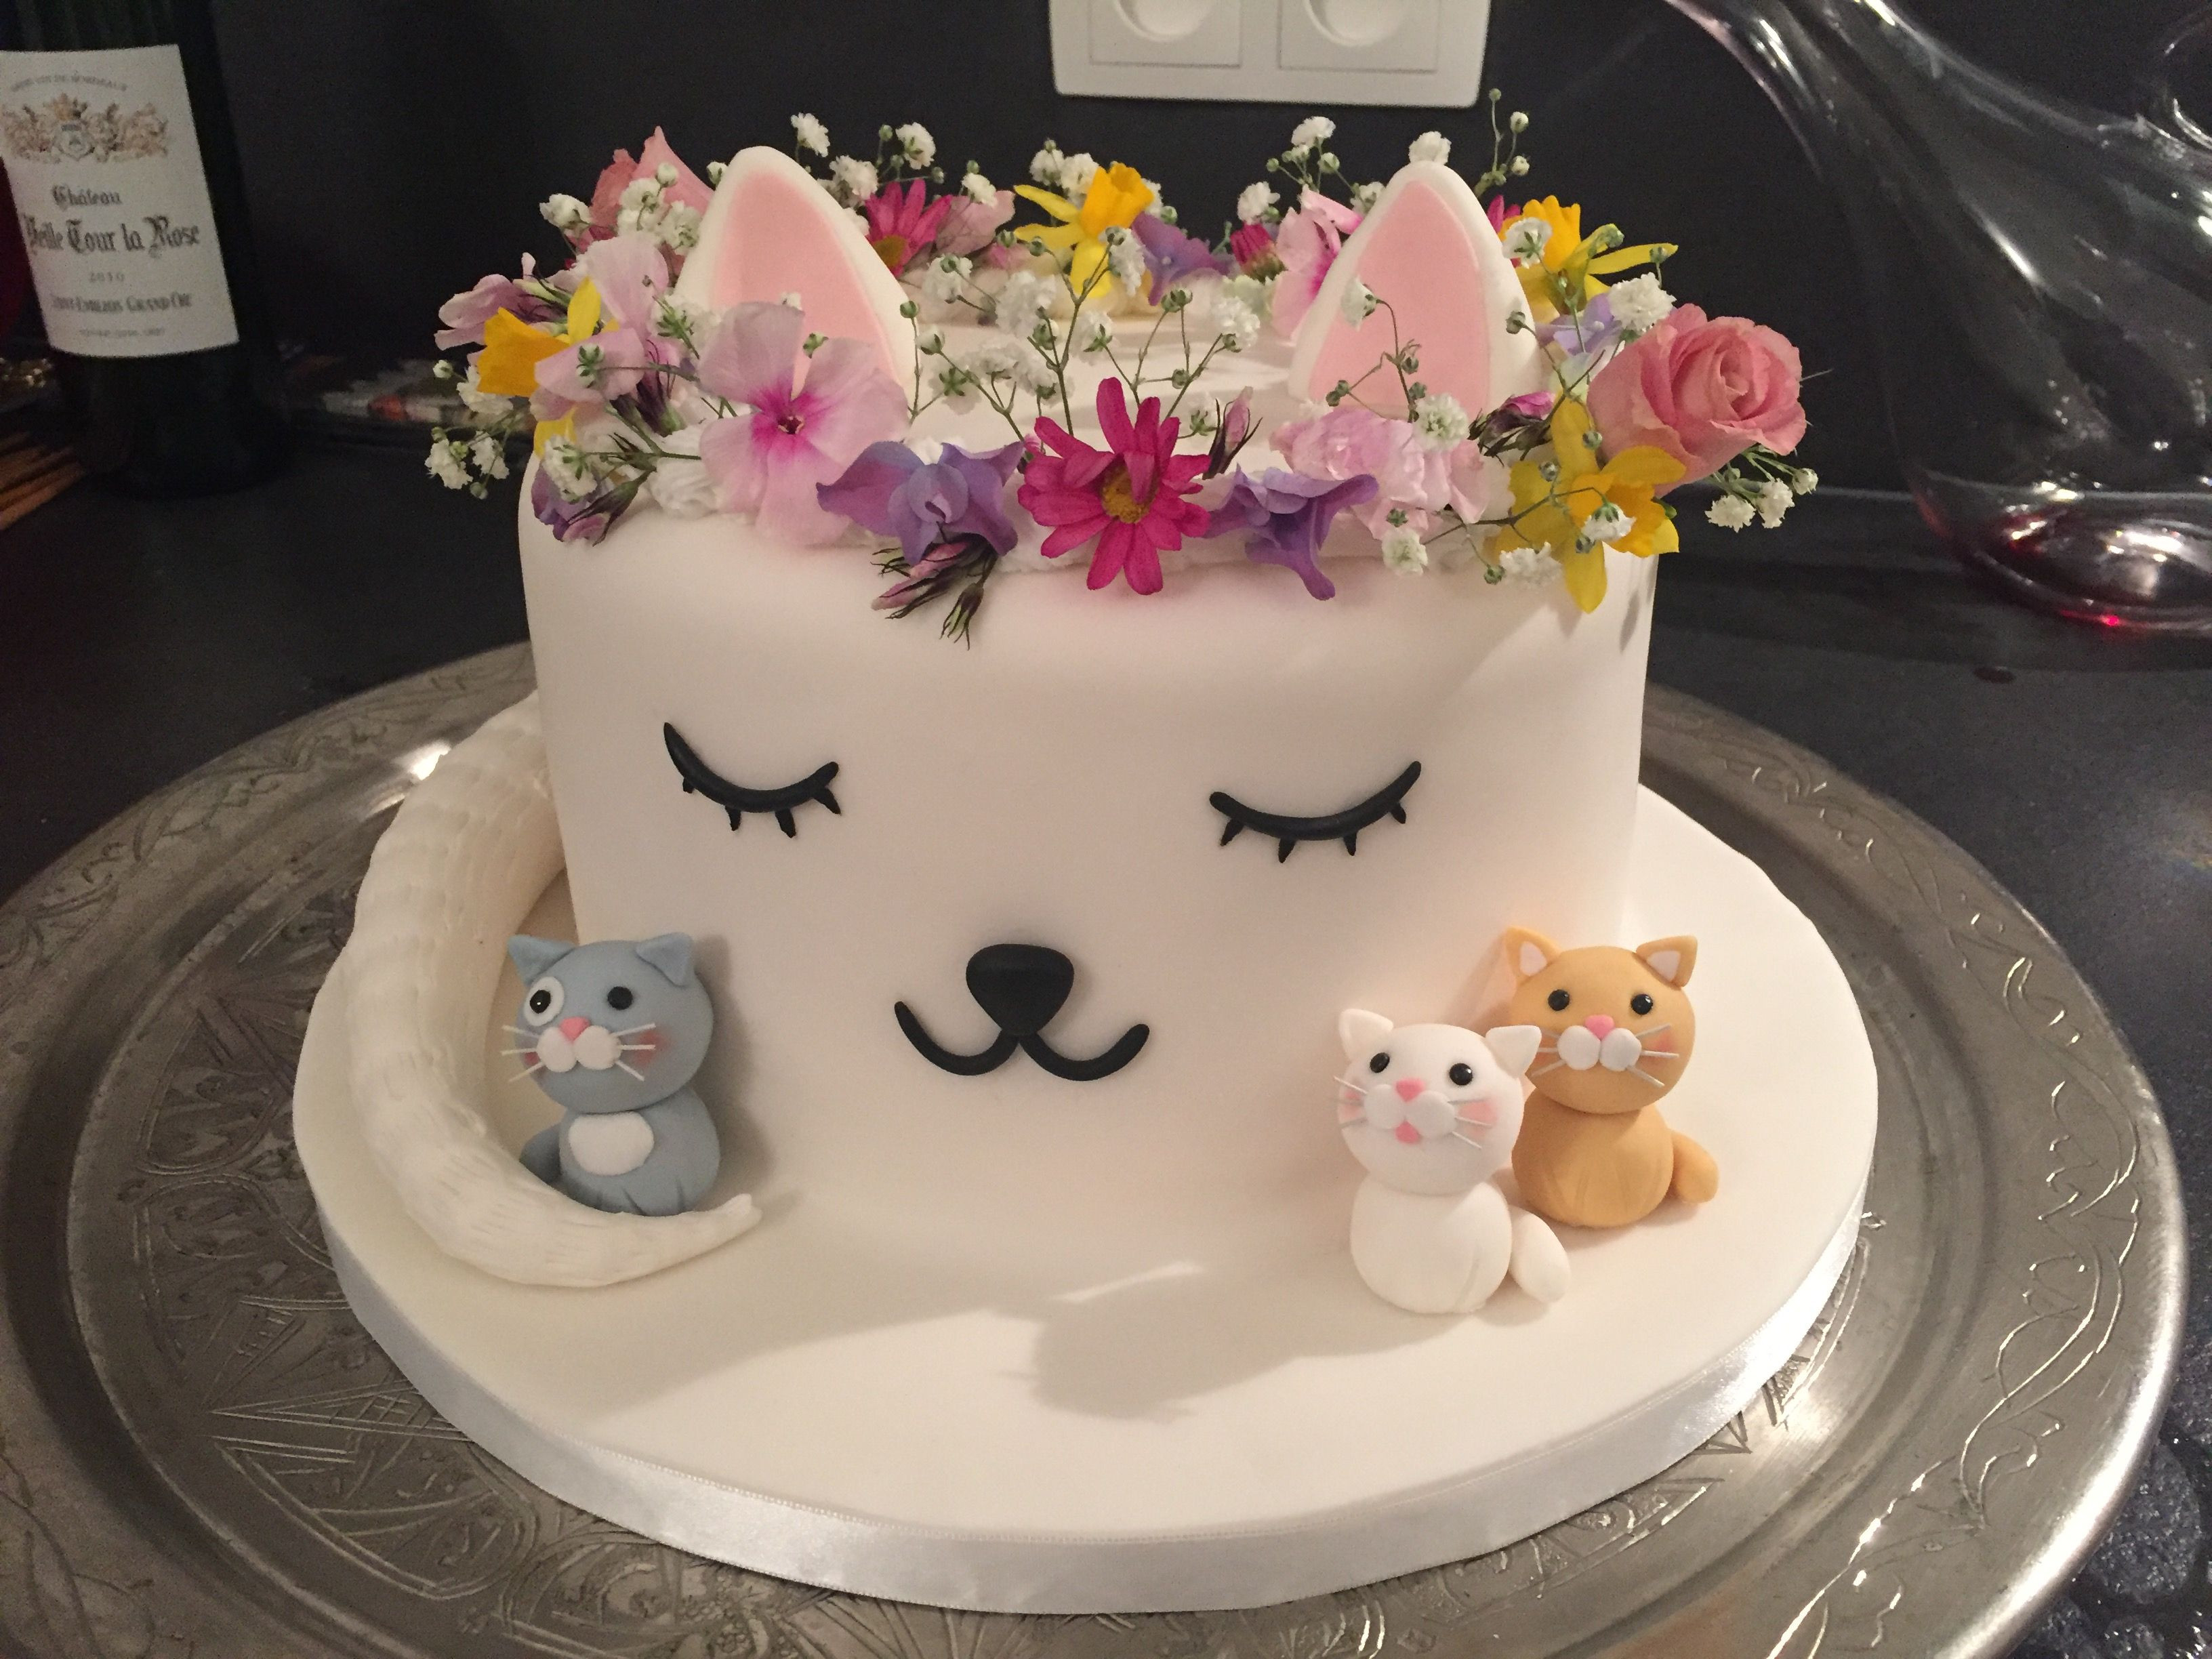 Best ideas about Cat Birthday Cake . Save or Pin Cat cake Lindas invitaciones Pinterest Now.